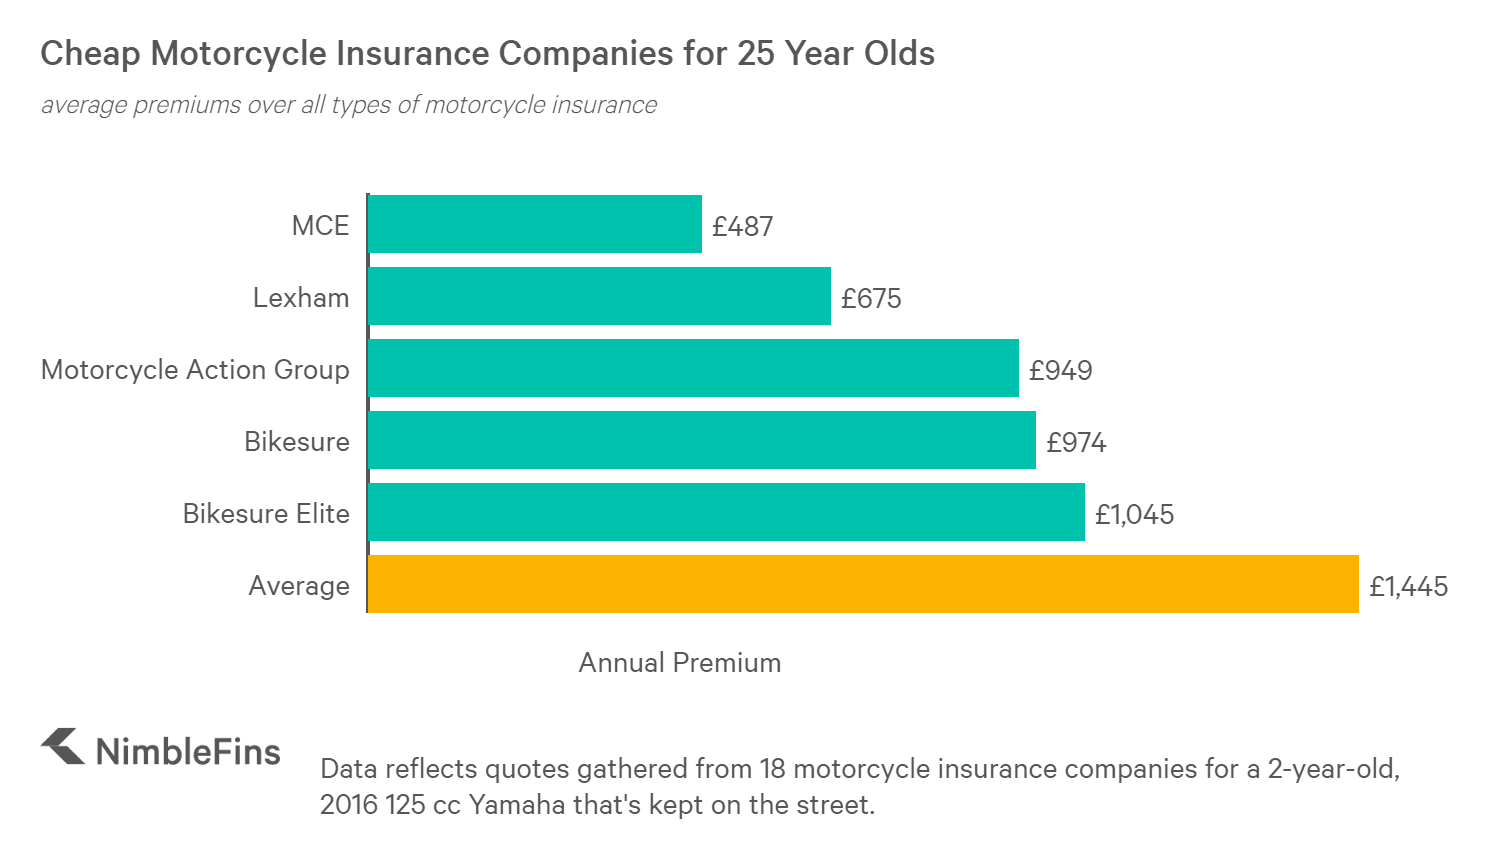 chart showing the cheapest motorcycle insurance companies for a 25 year old